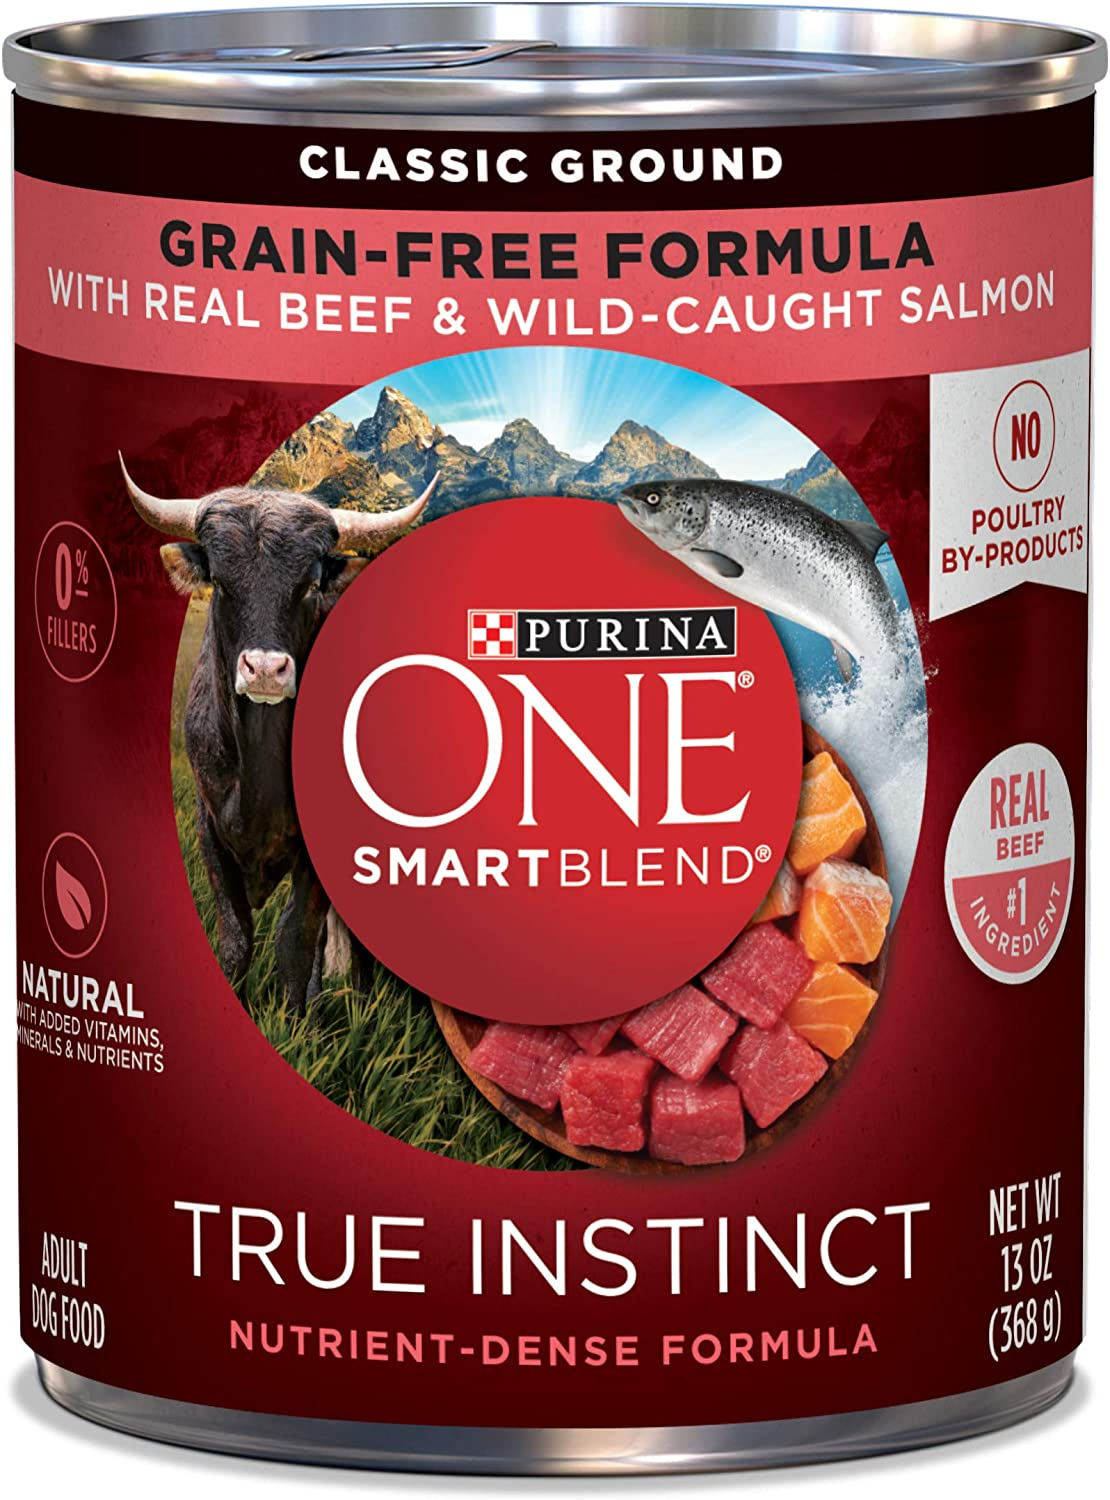 Purina ONE SmartBlend True Instinct Classic Ground with Real Beef & WildCaught Salmon Dog Food, 13 oz